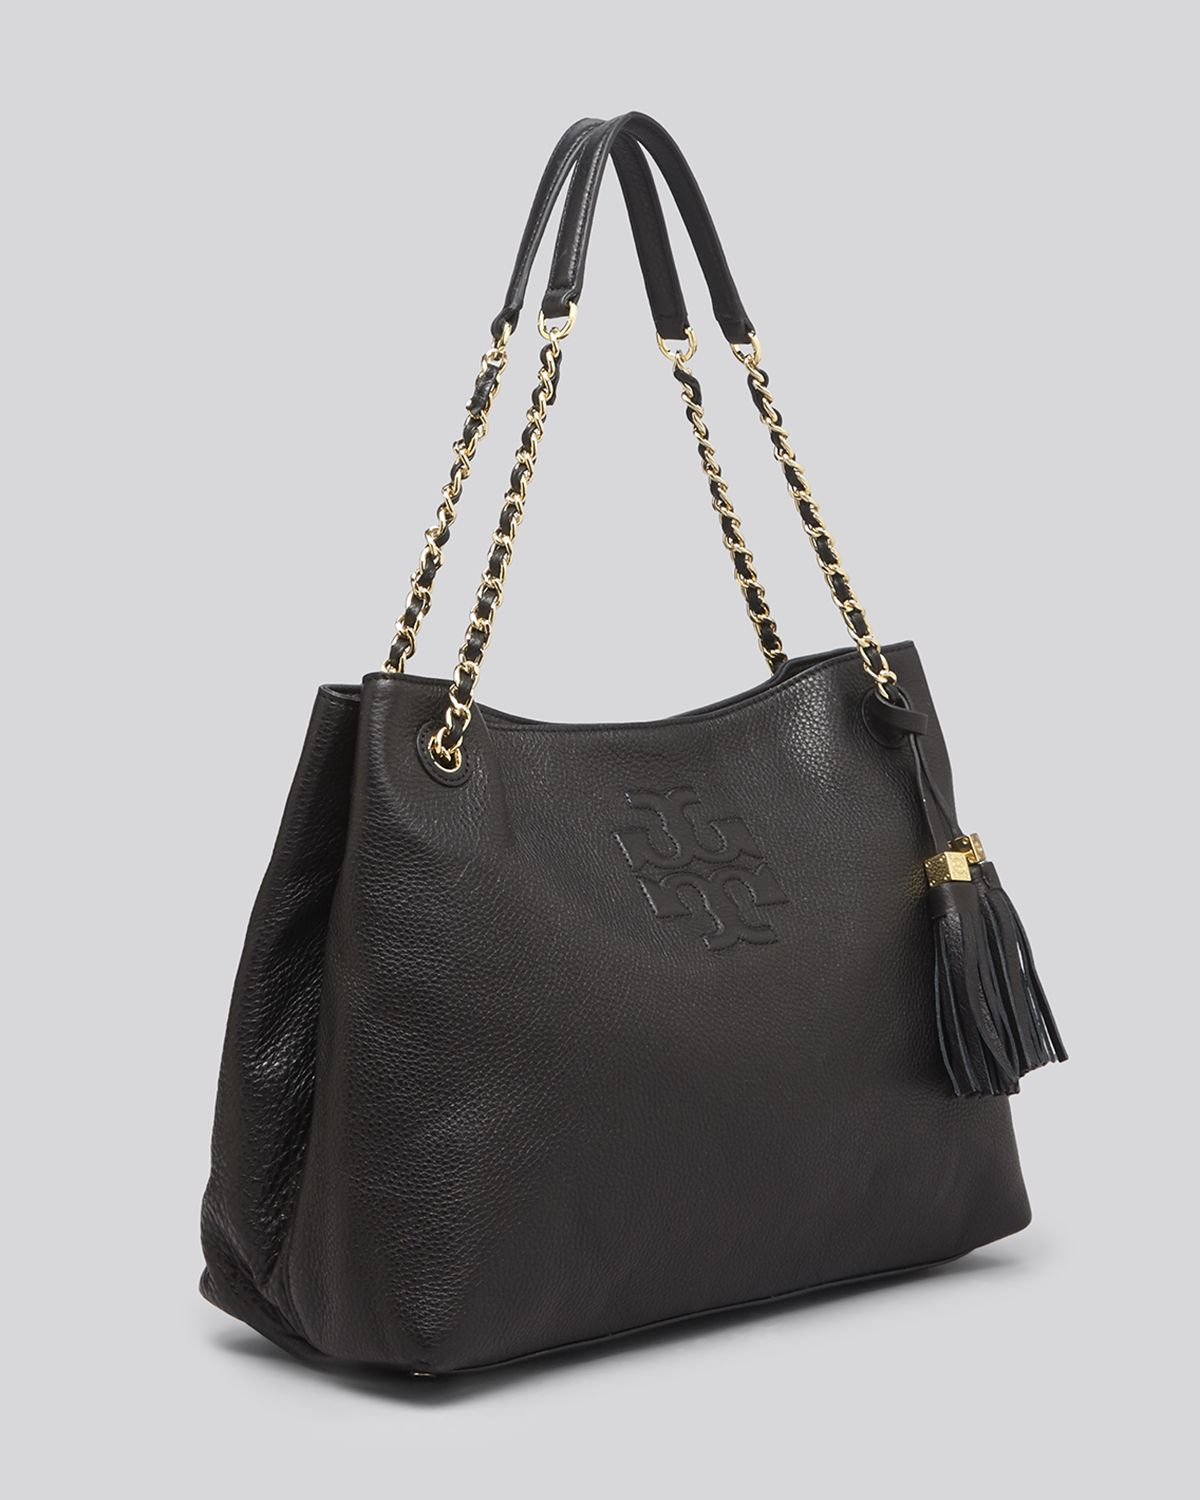 53cb2308f50 Tory Burch Tote Thea Chain Shoulder Slouchy in Black - Lyst